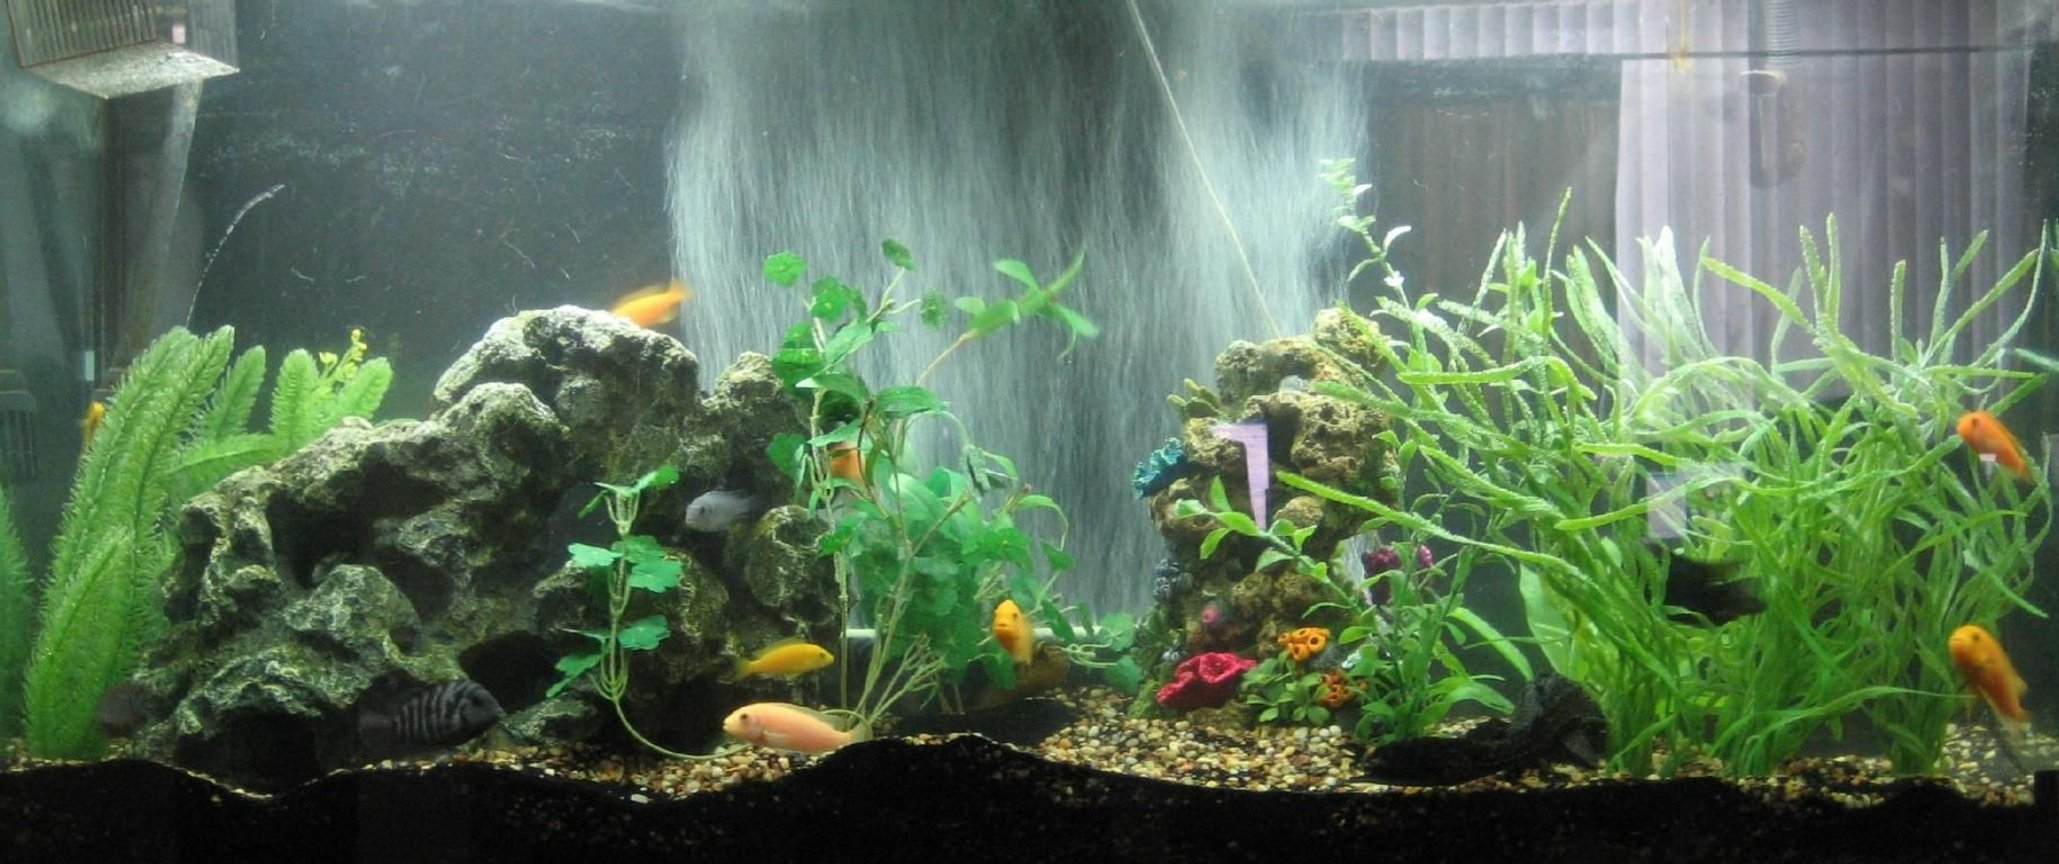 60 gallons freshwater fish tank (mostly fish and non-living decorations) - Not the best in the world but hey, I love my fish tank